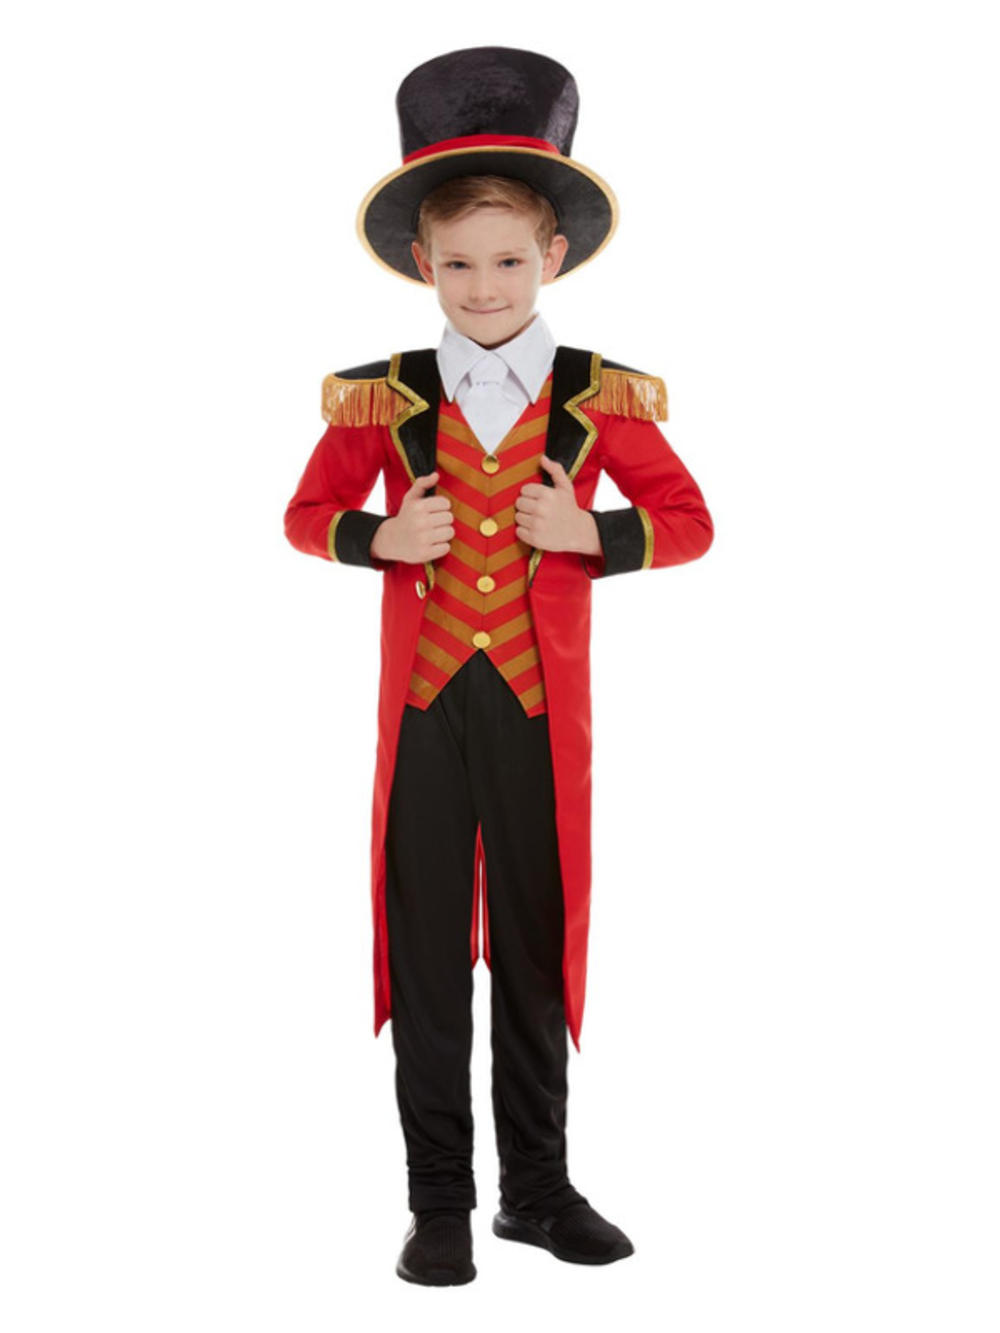 Deluxe Ringmaster Boys Fancy Dress Great Showman Circus Lion Tamer Kids Costume